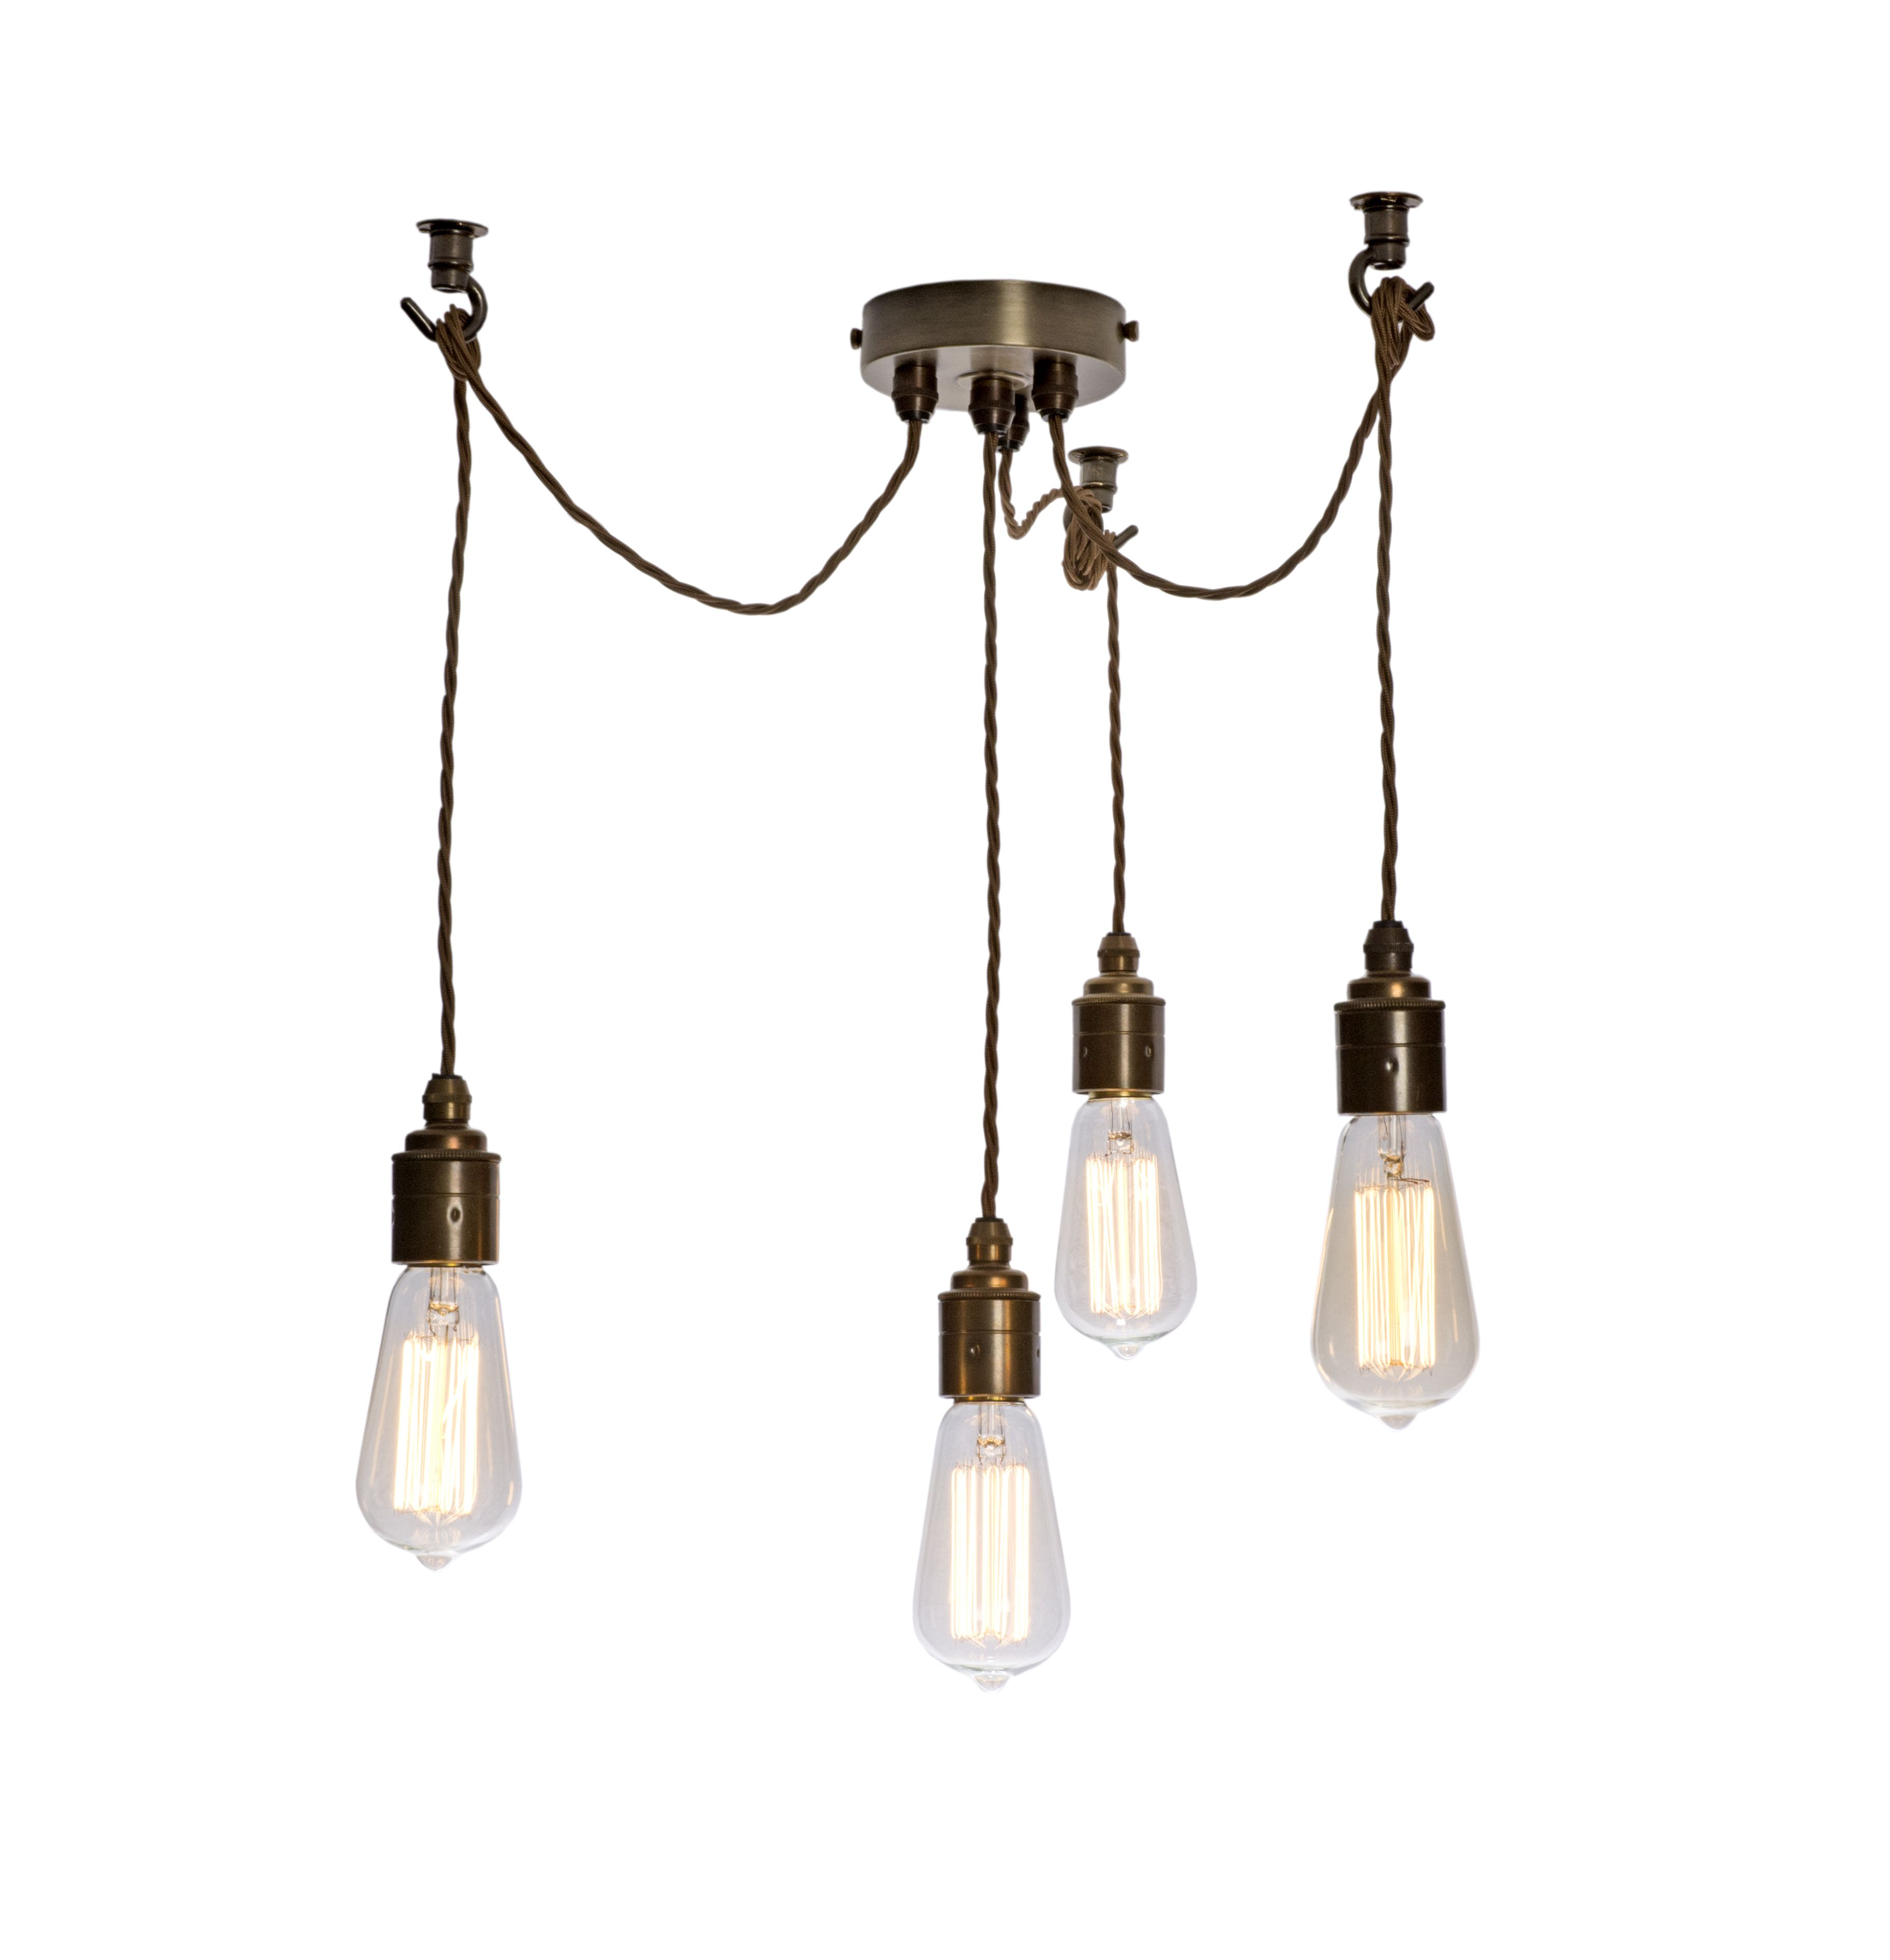 Multi Drop Cord Grip Ceiling Plate In Antique Finish Ceiling Lights Lighting Parts Ceiling